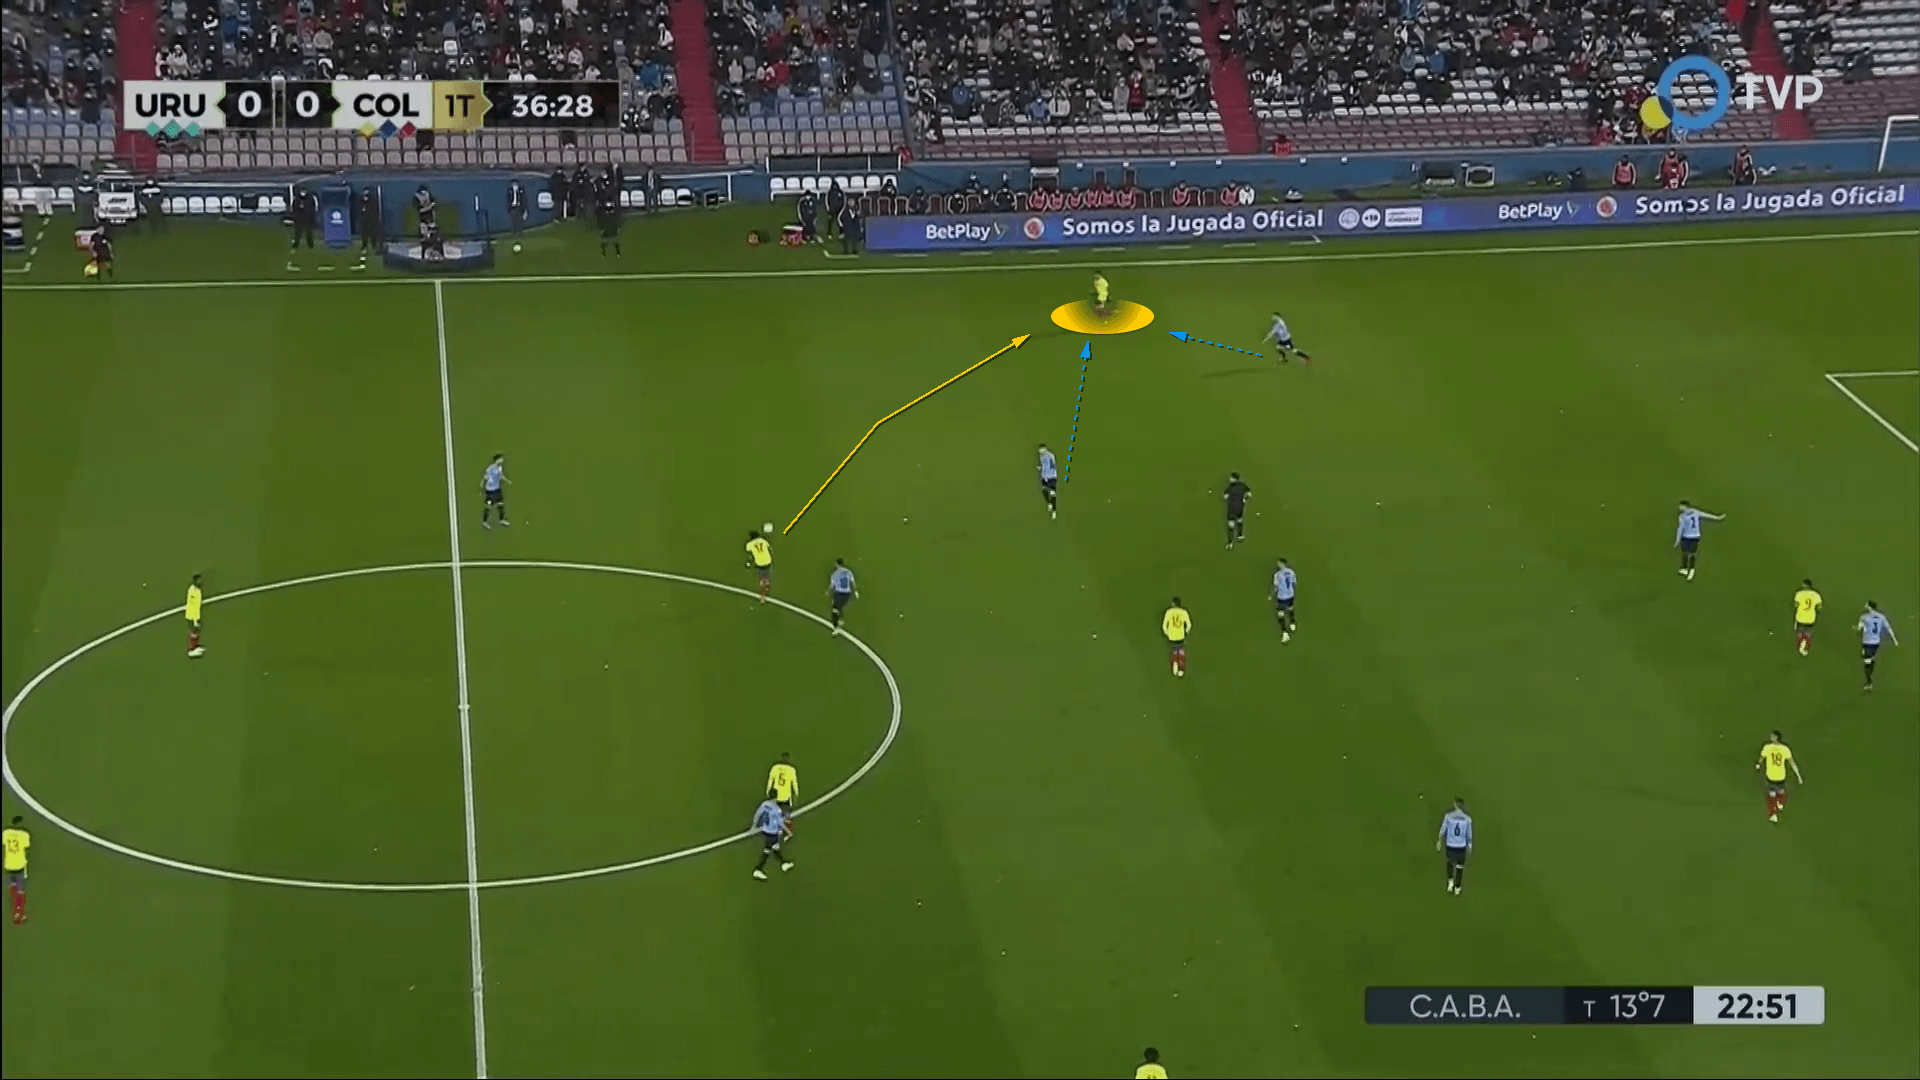 World Cup Qualifier 2021: Uruguay vs Colombia - tactical analysis tactics